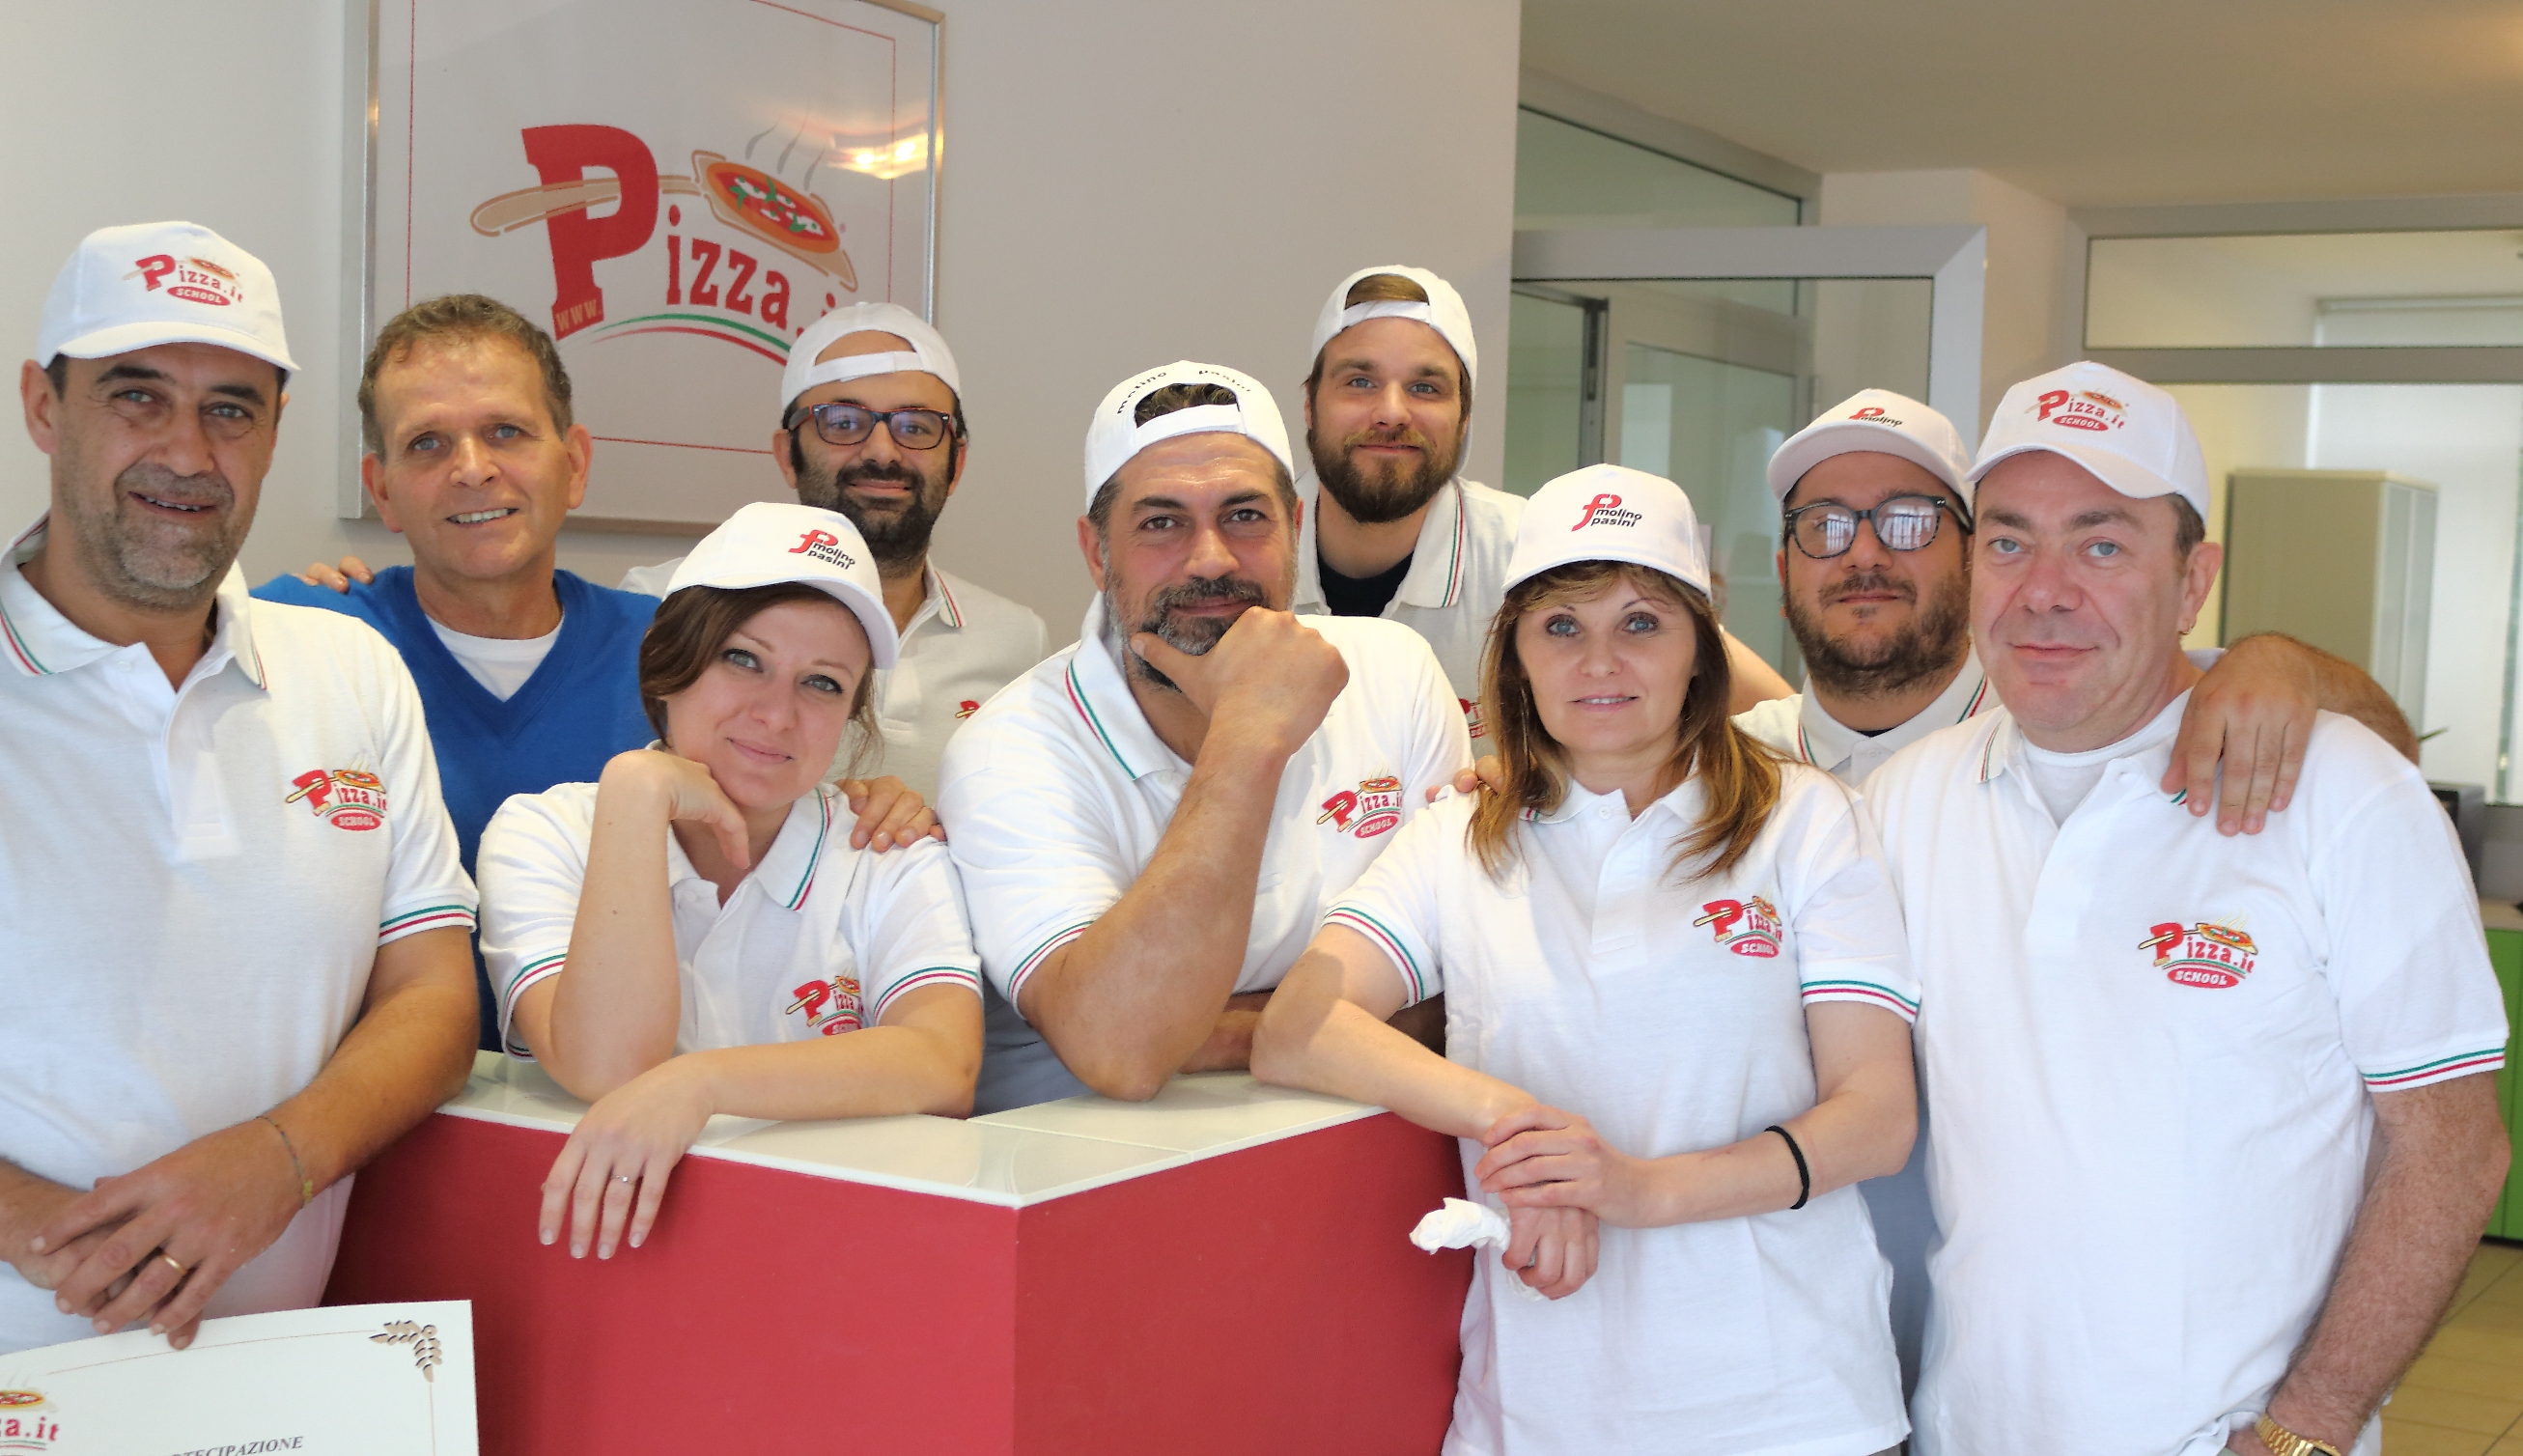 Pizza.it School- corso pizza in teglia